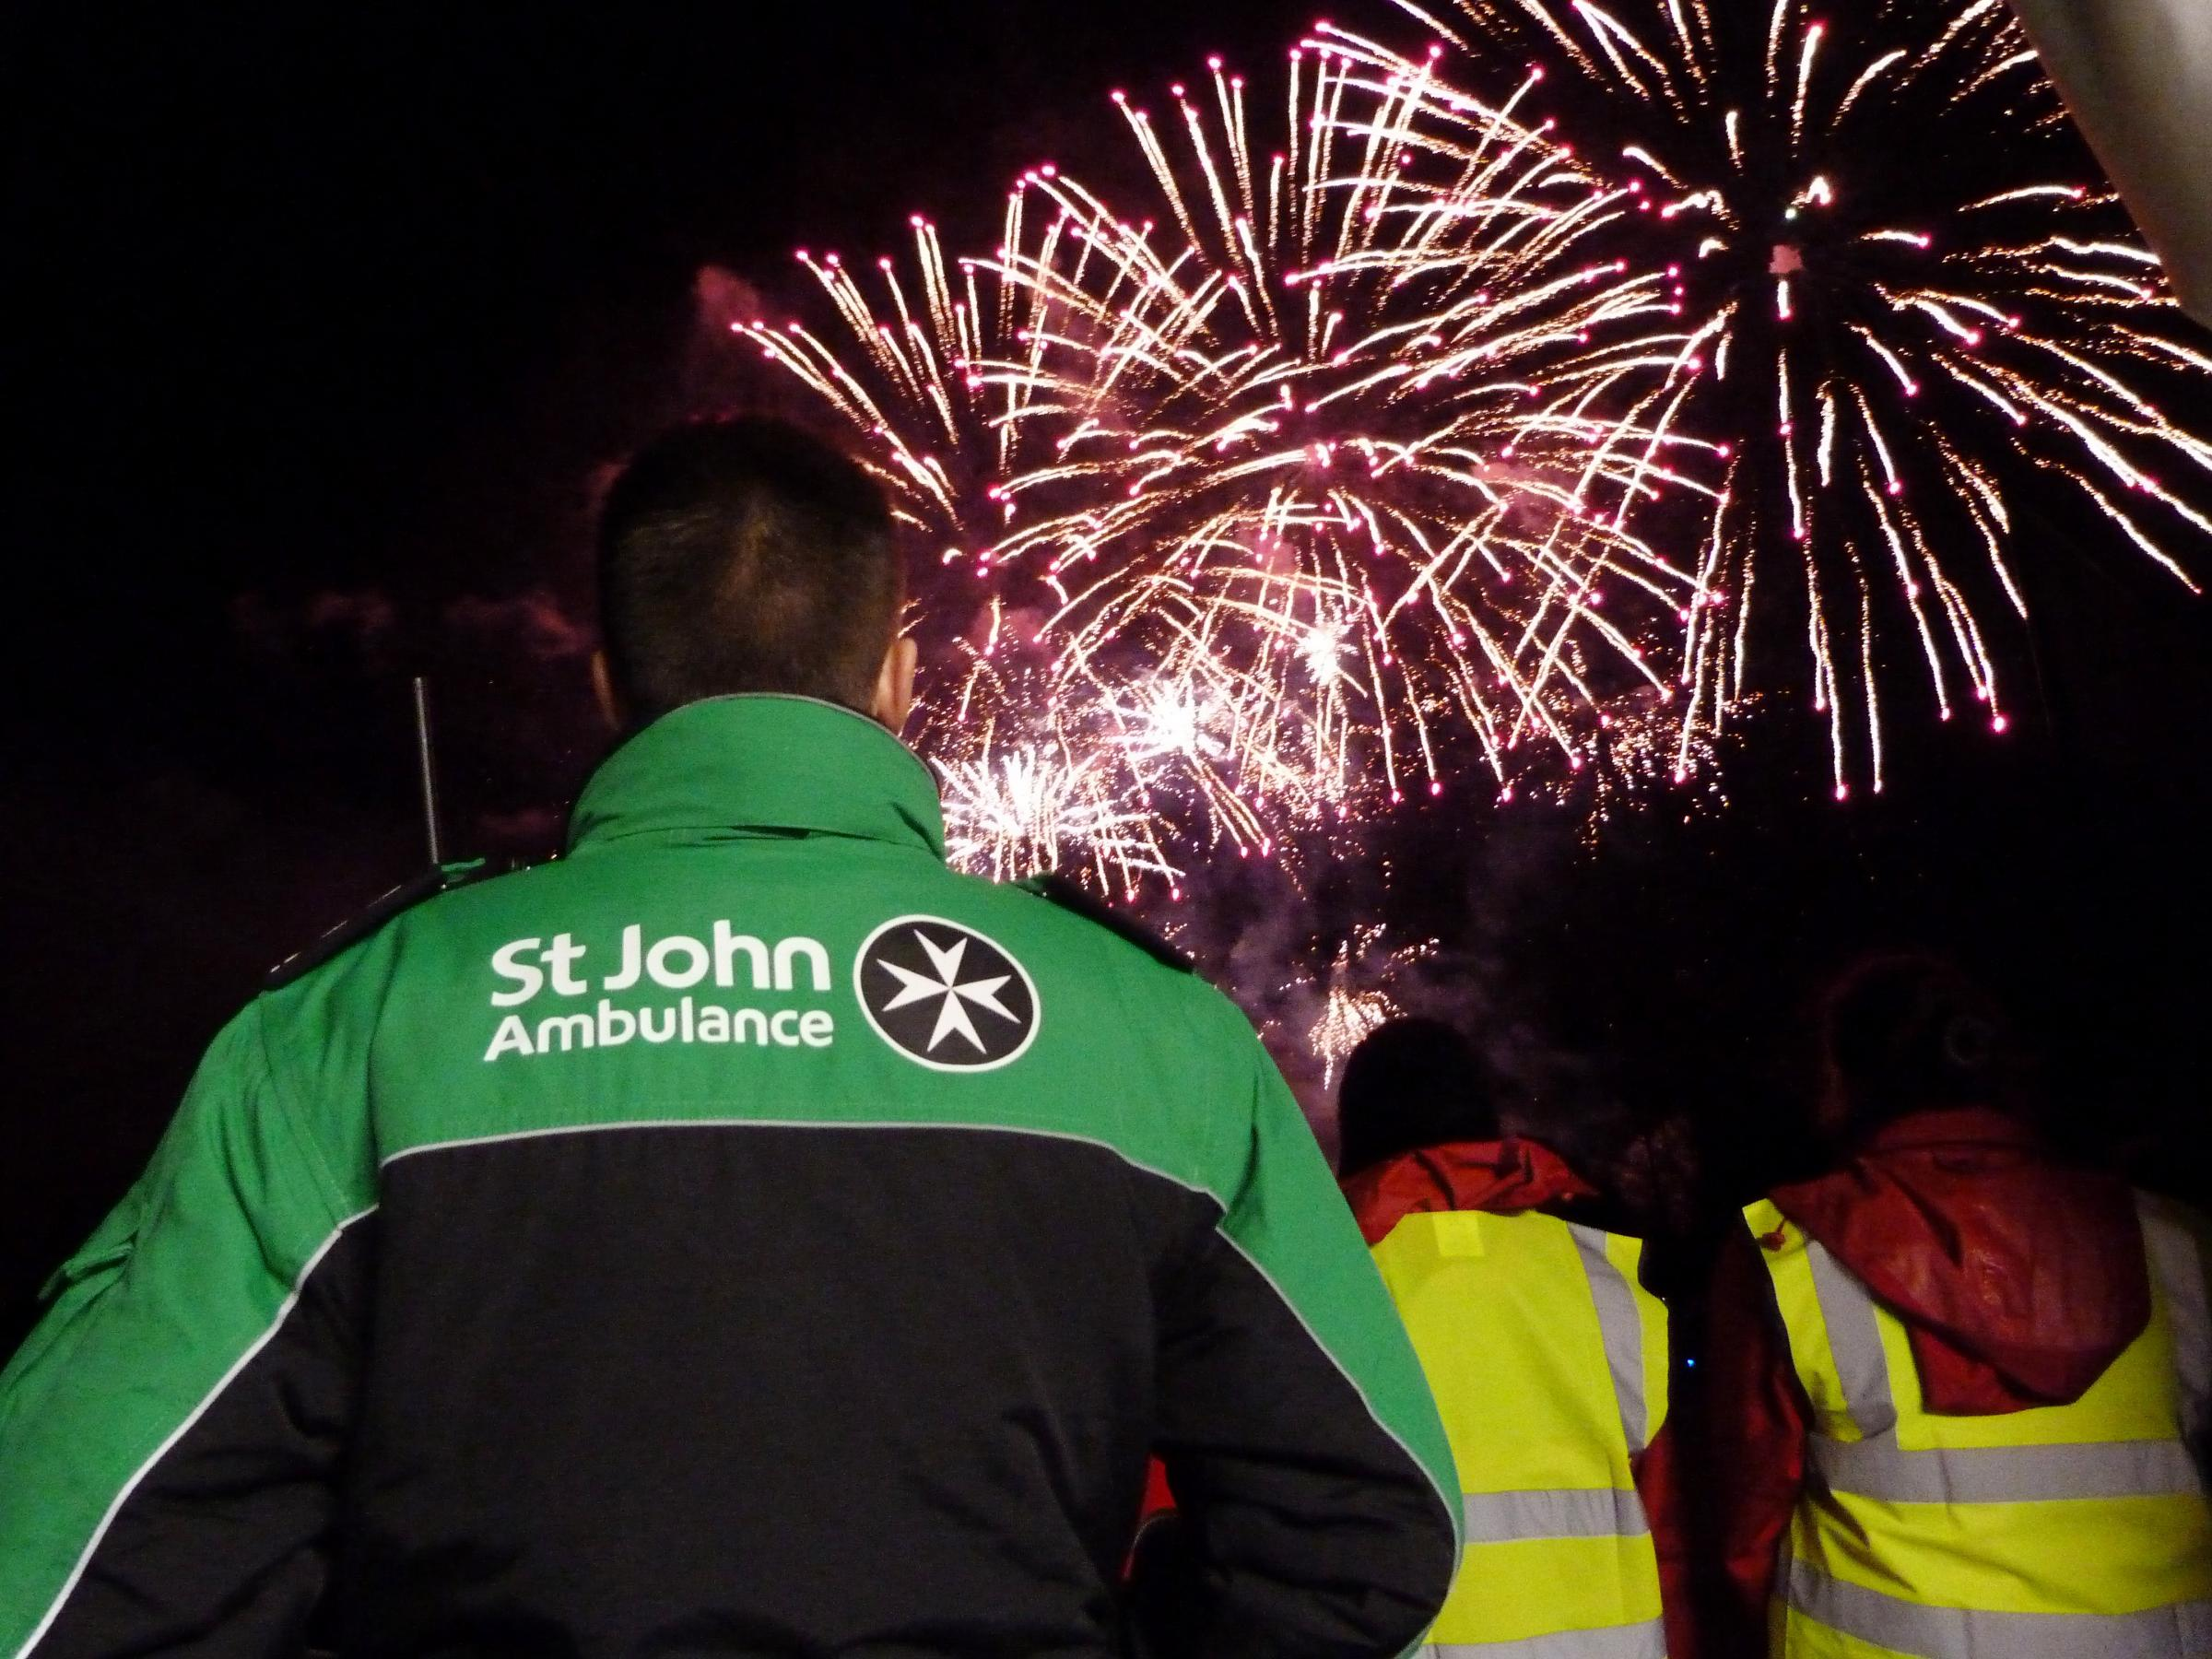 St Johns Ambulance releases advice for firework night and dealing with injuries